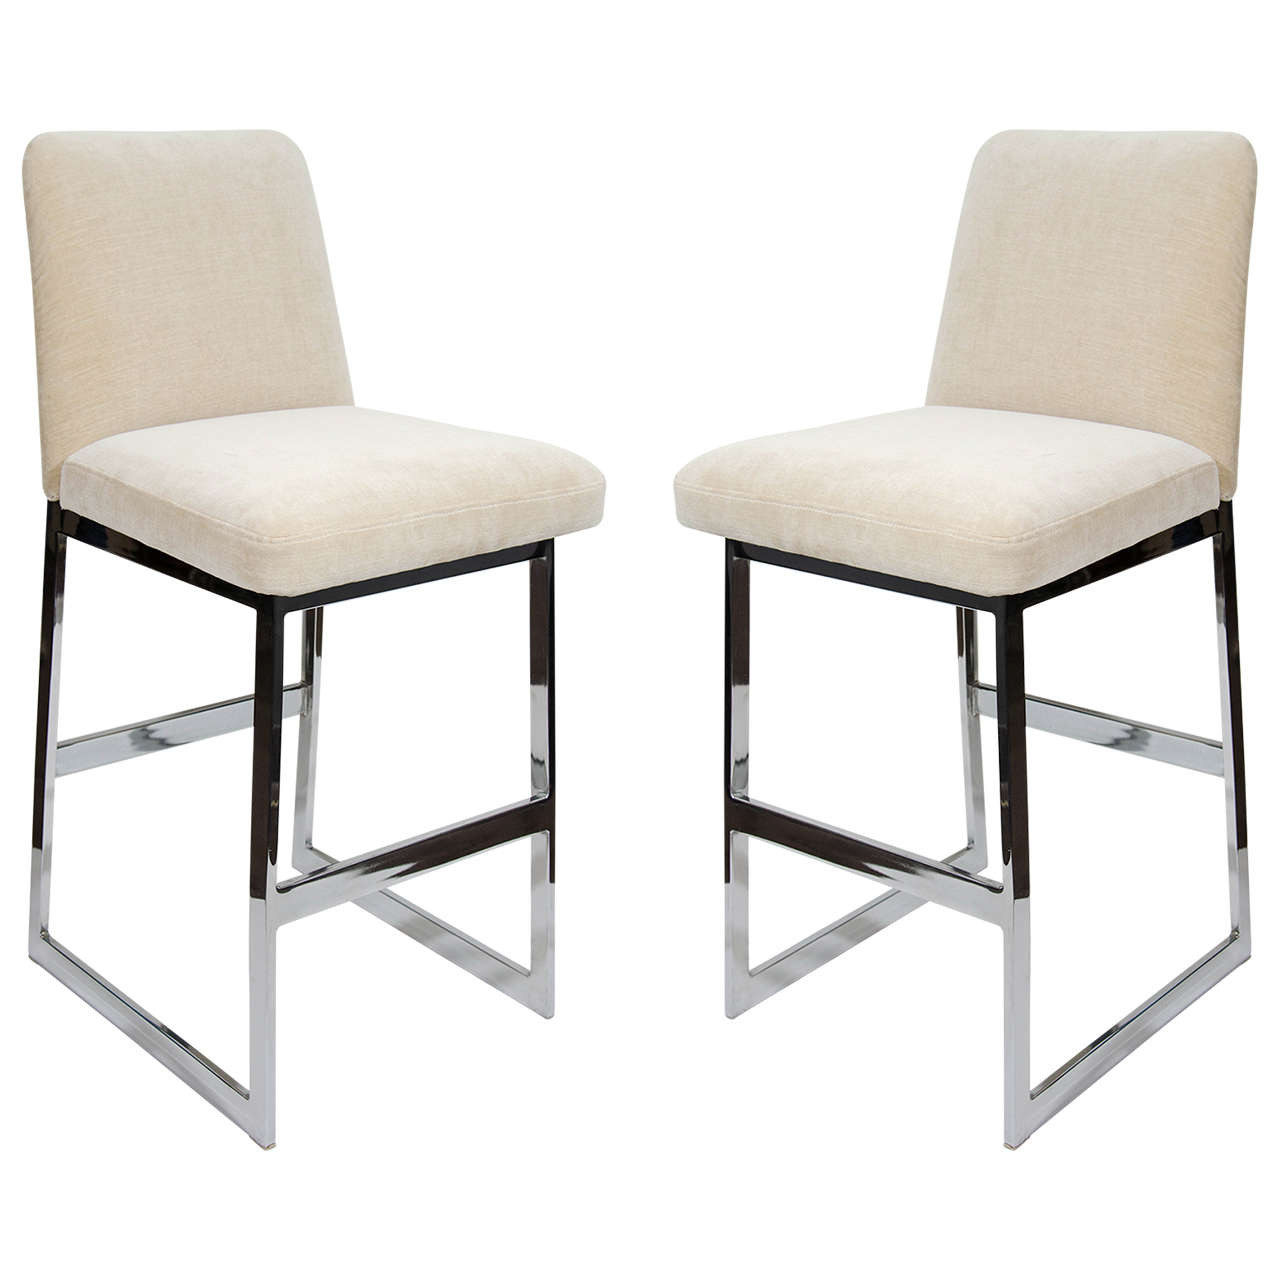 Upholstered Bar Chairs Pair Of Luxe Mid Century Modern Upholstered Counter Stools